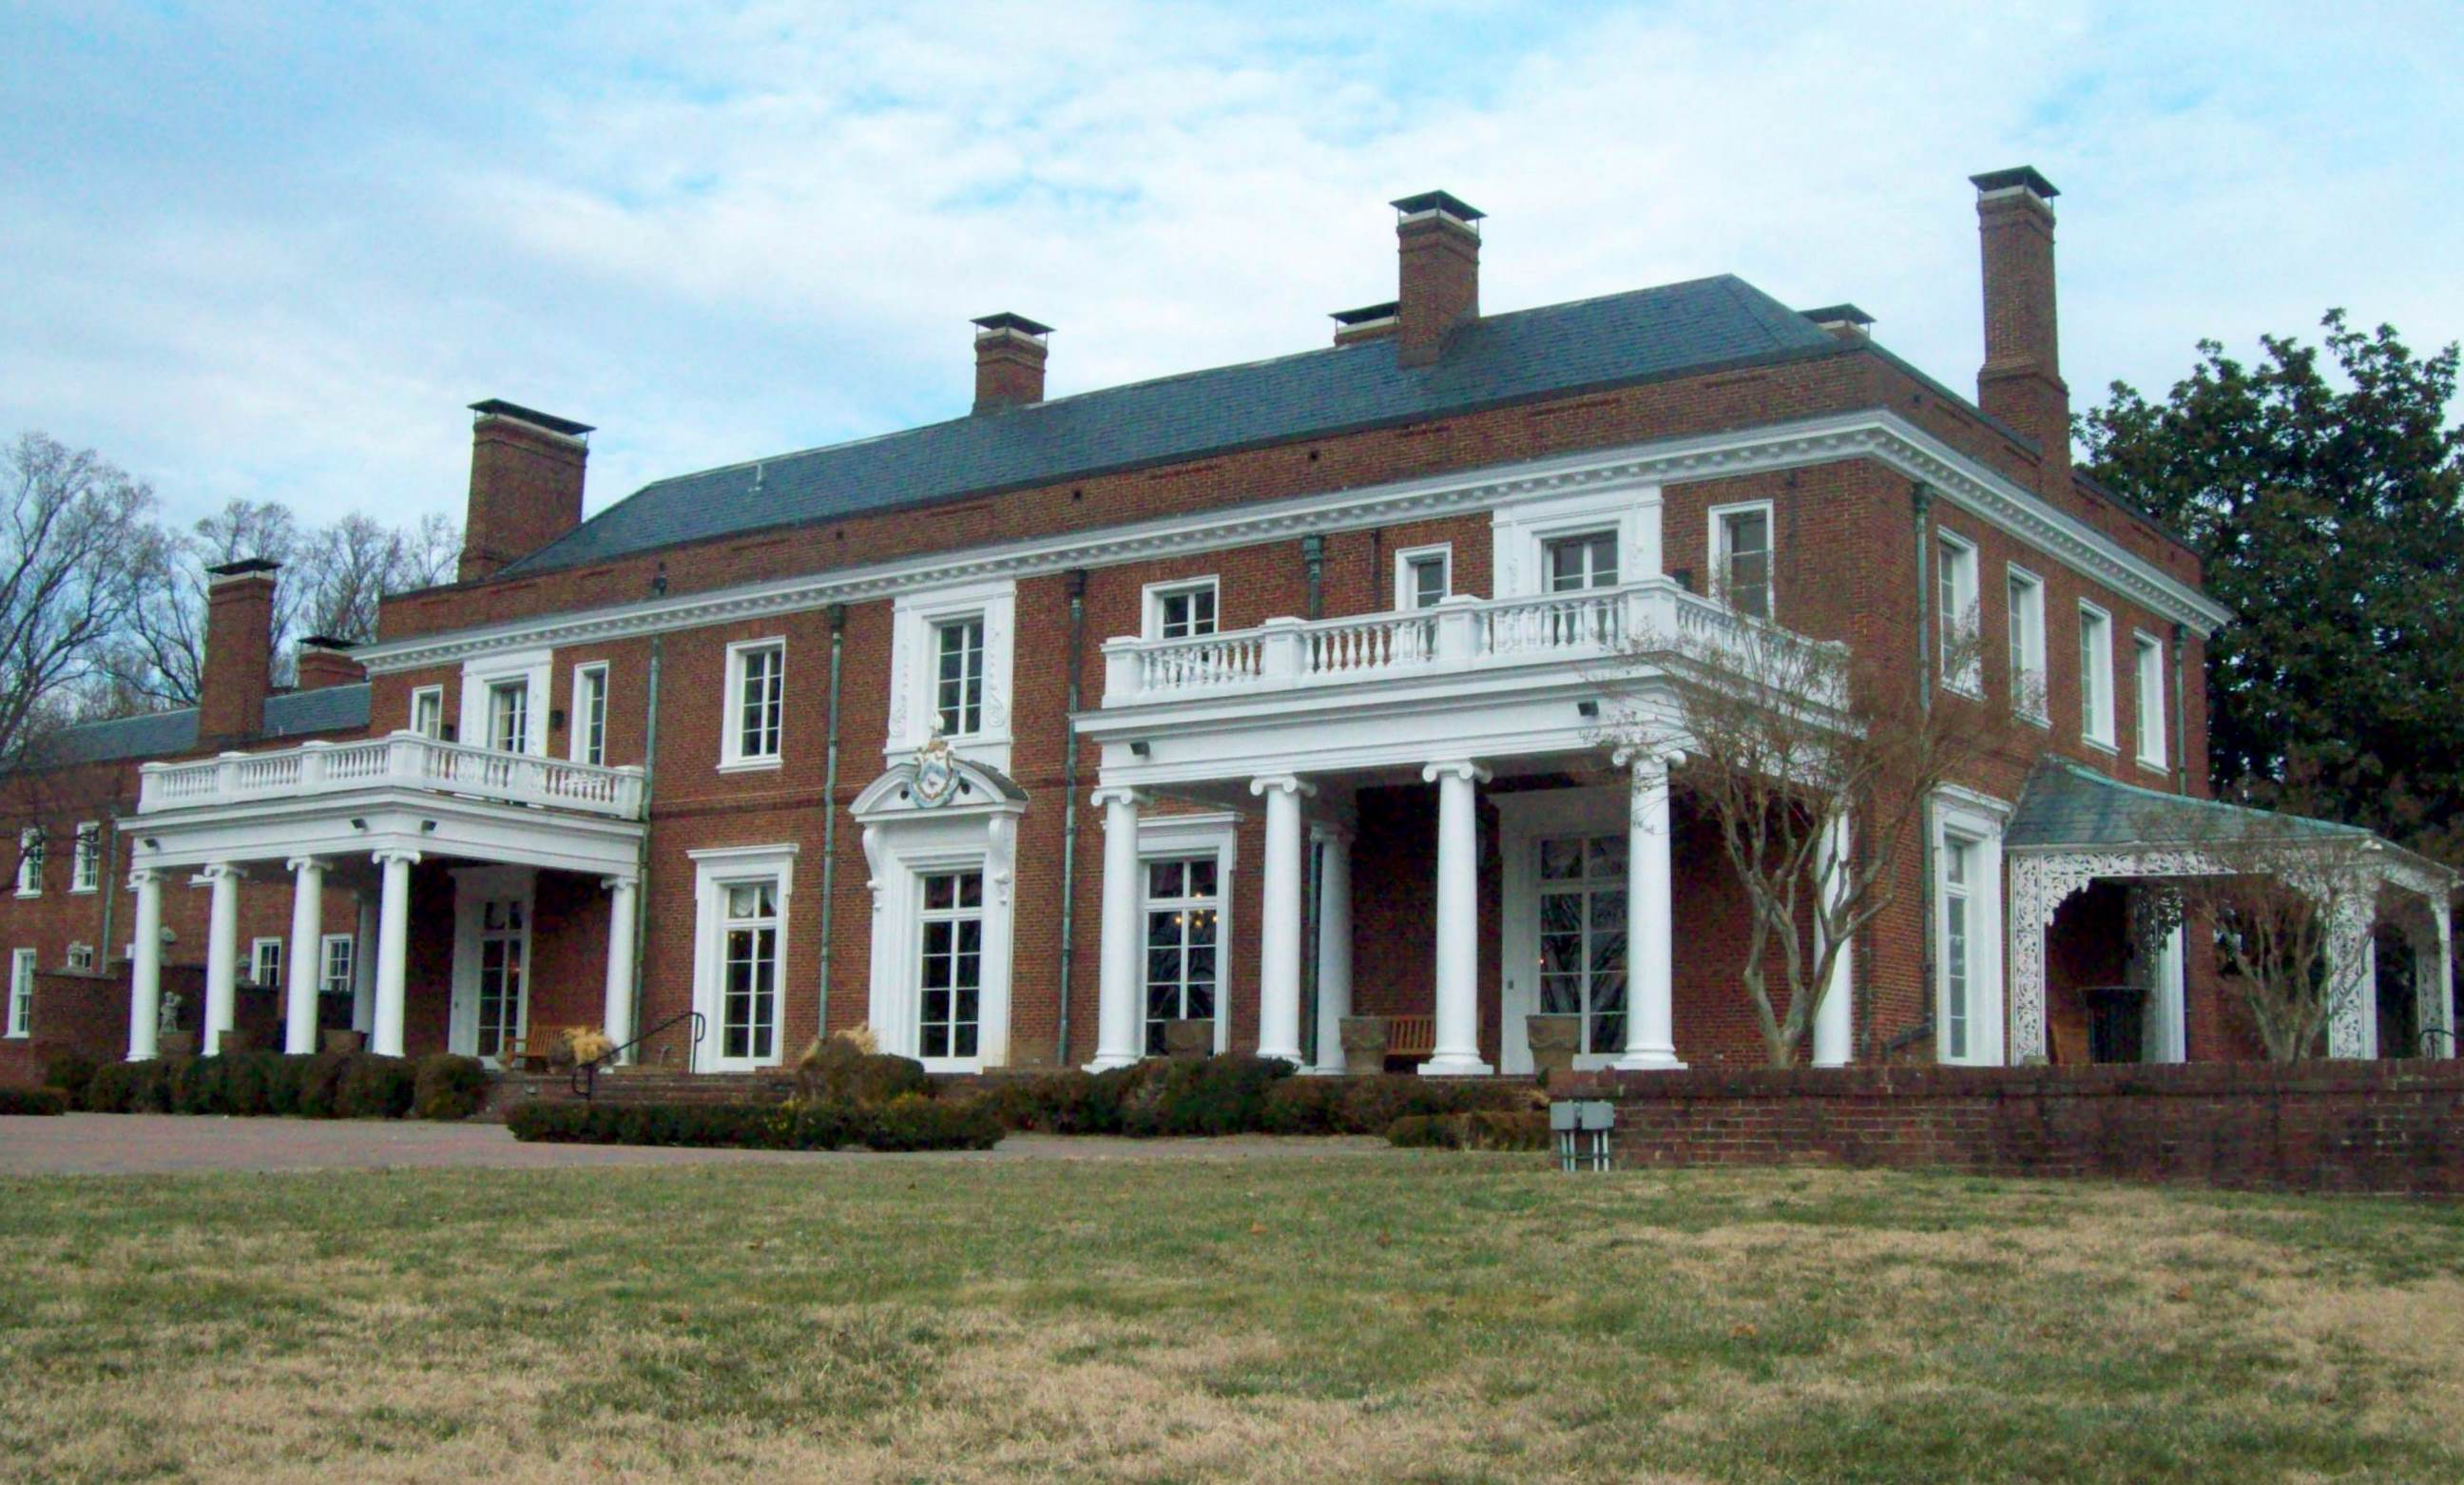 Oxon Hill Manor